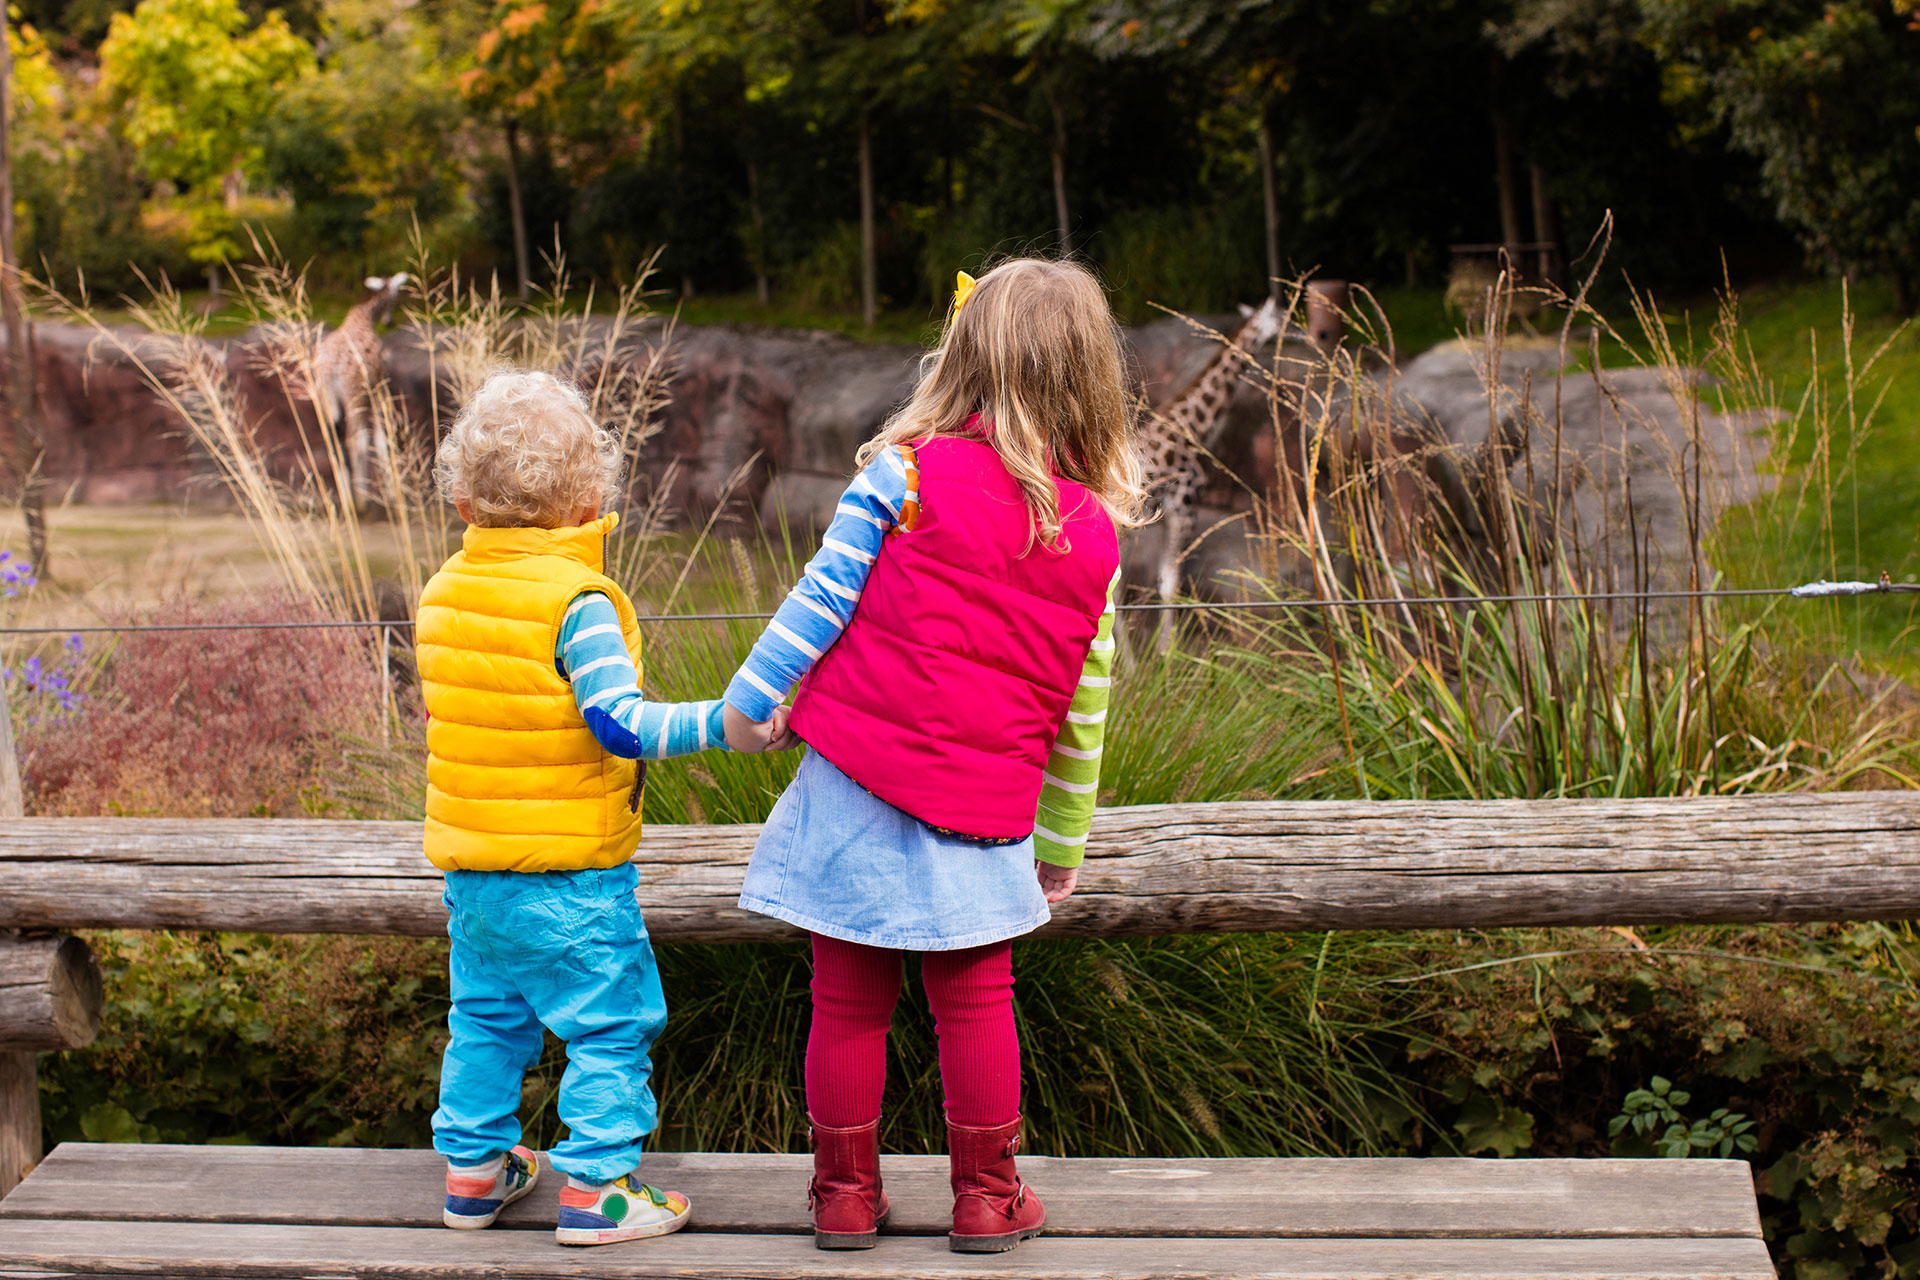 A brother and sister holding hands at the zoo.